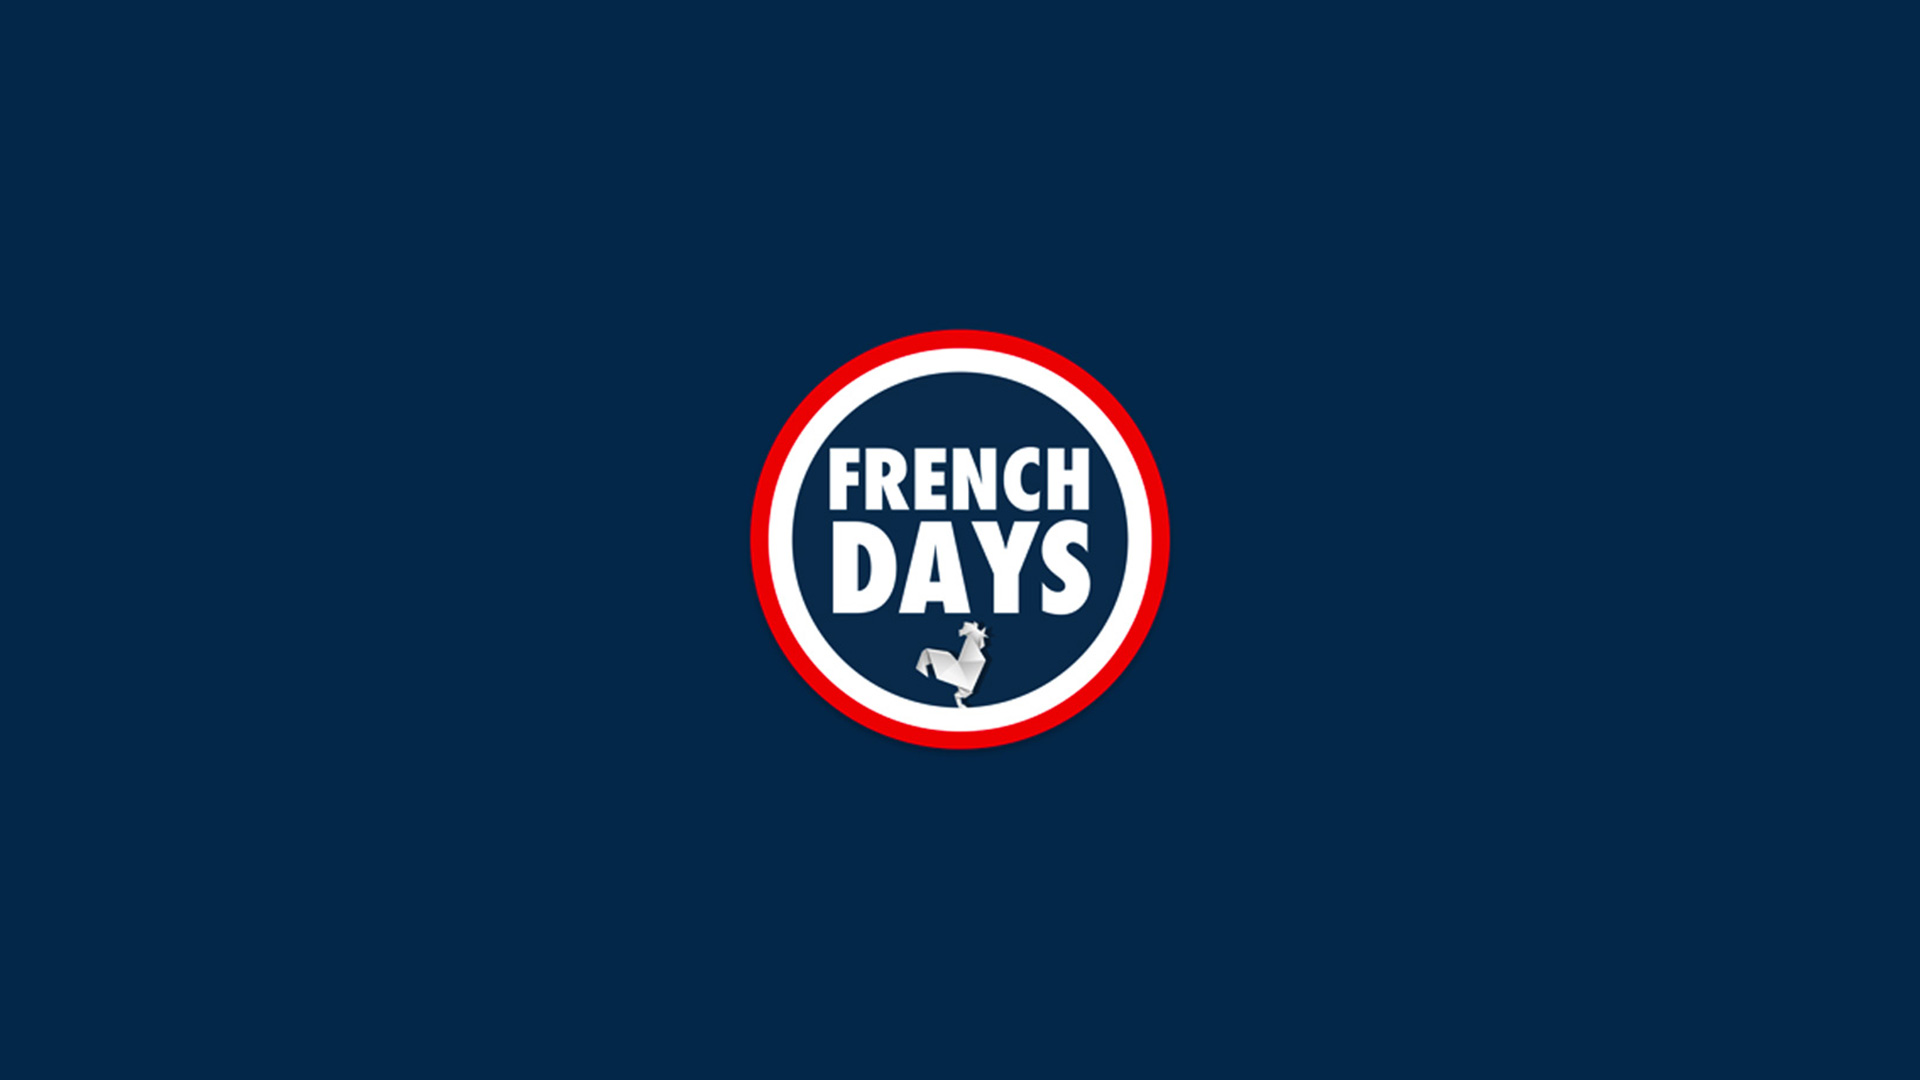 FrenchDays-reconditionne